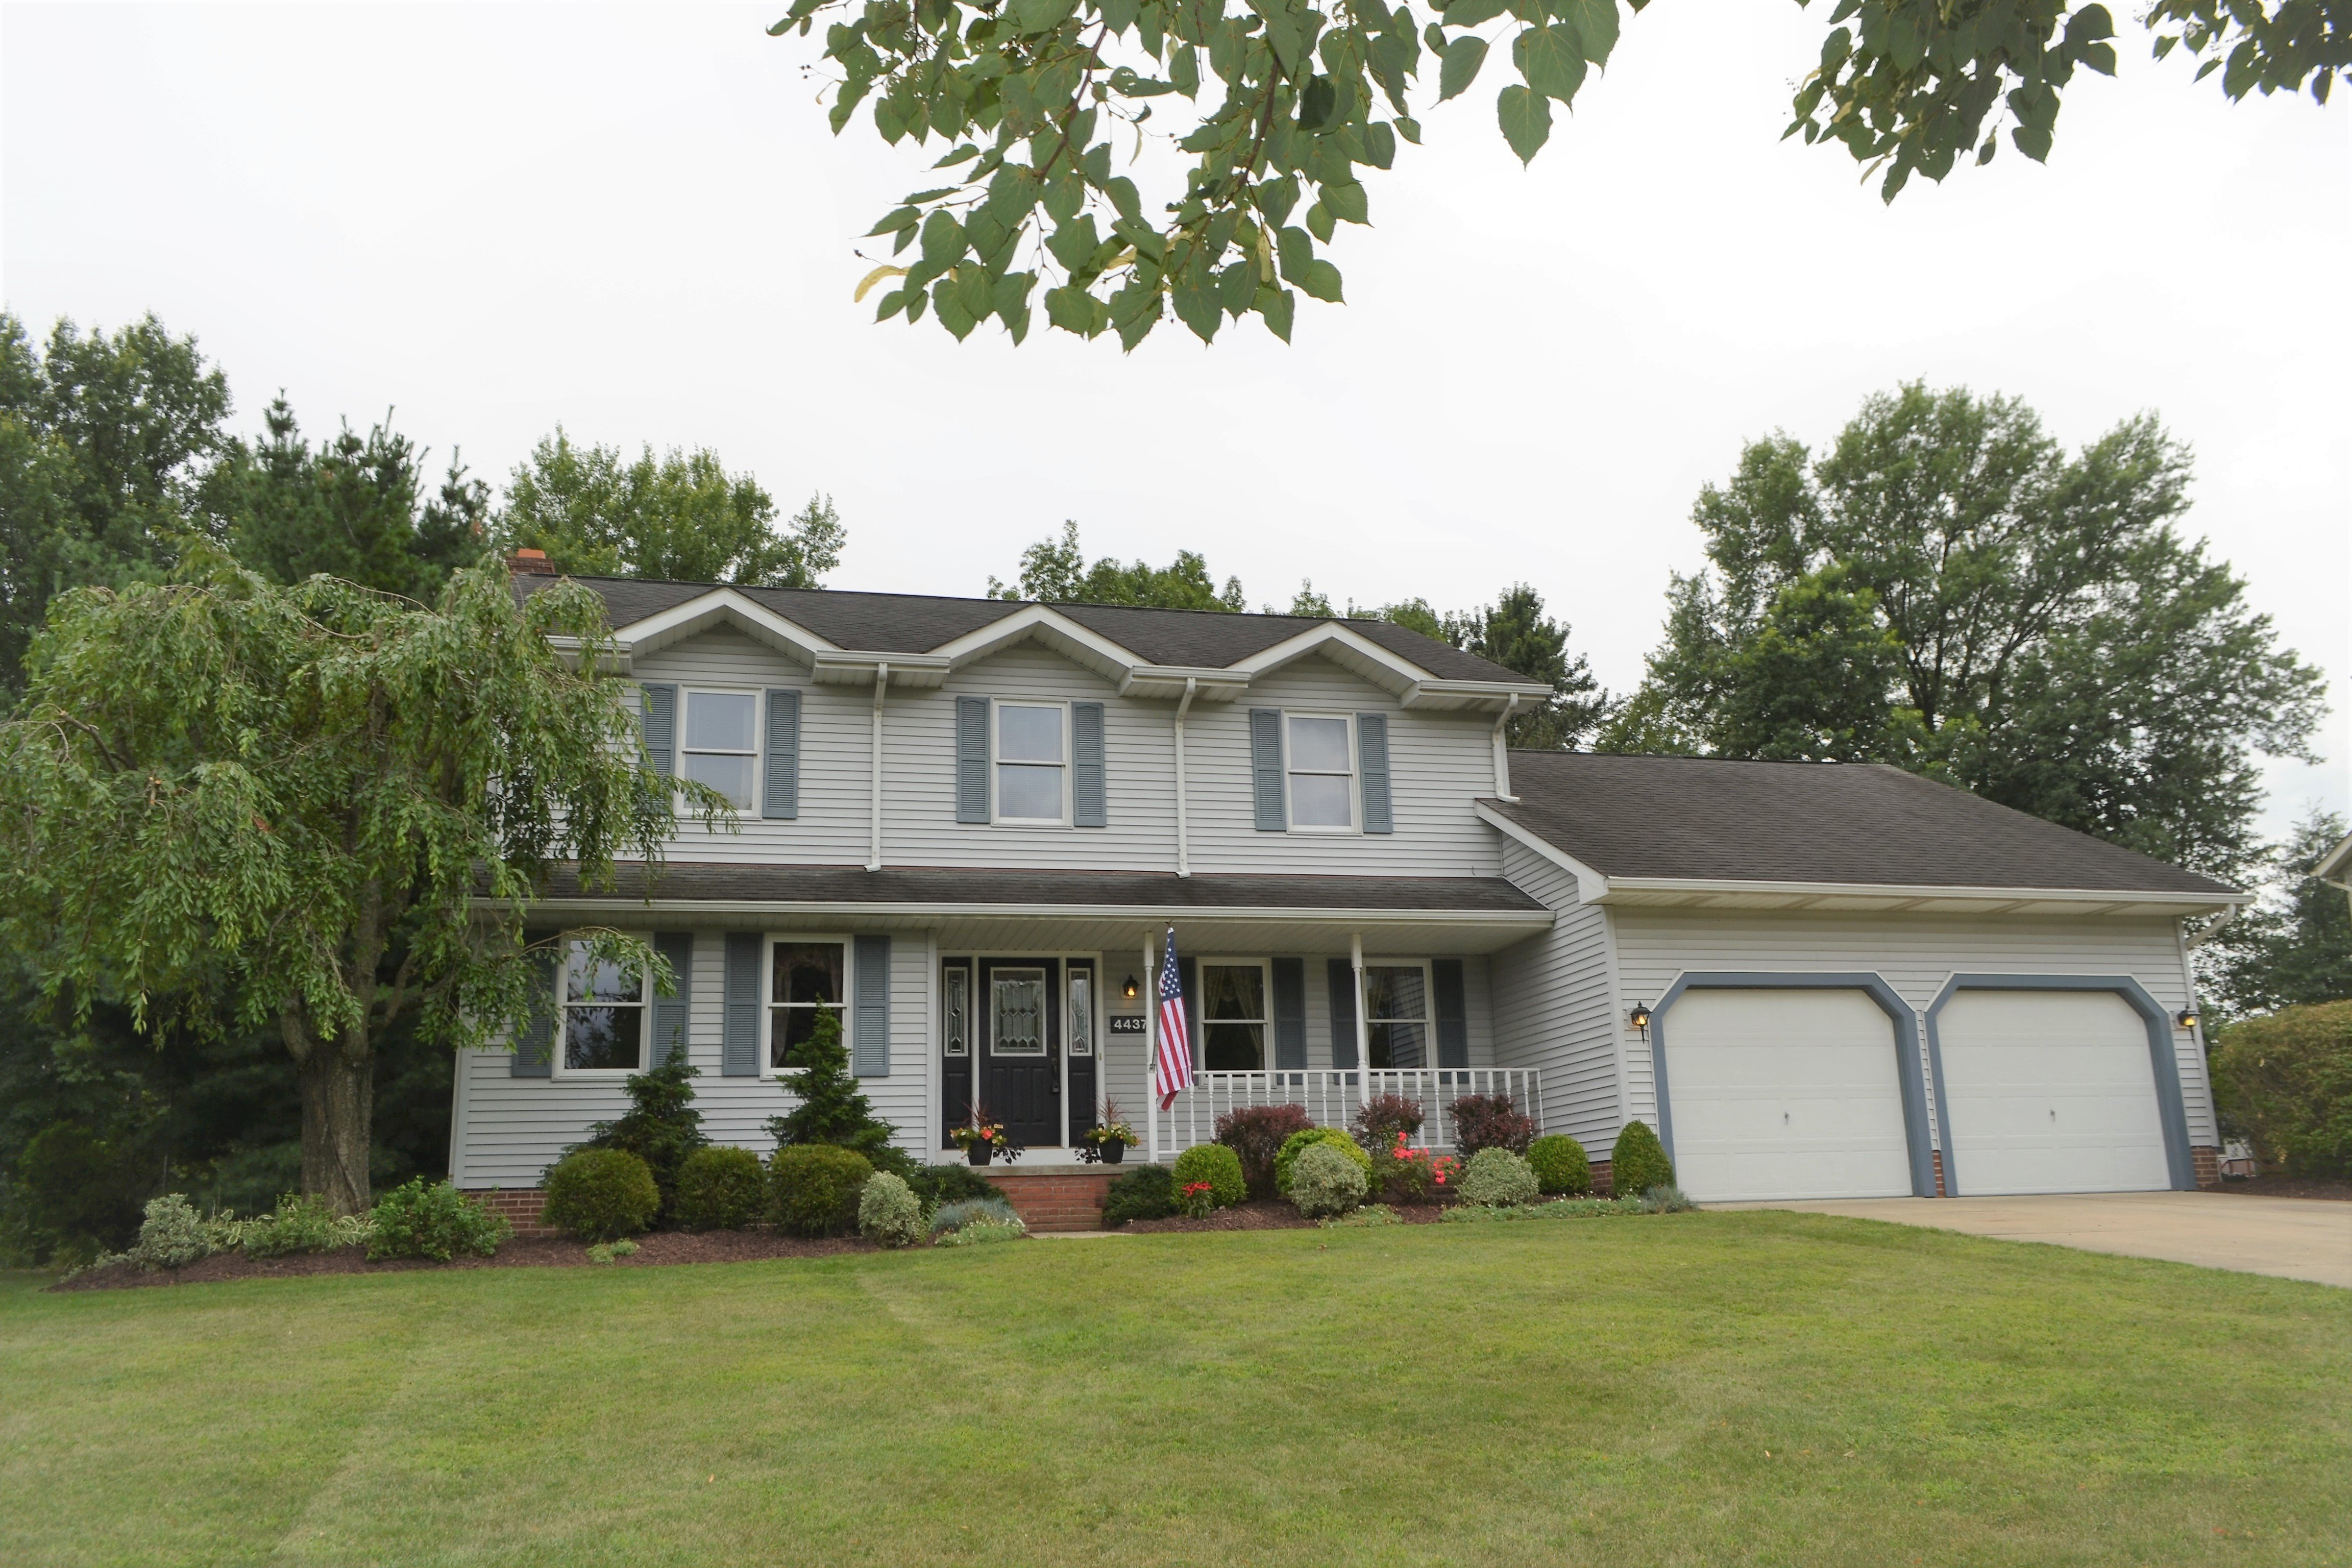 Stow - $279,900